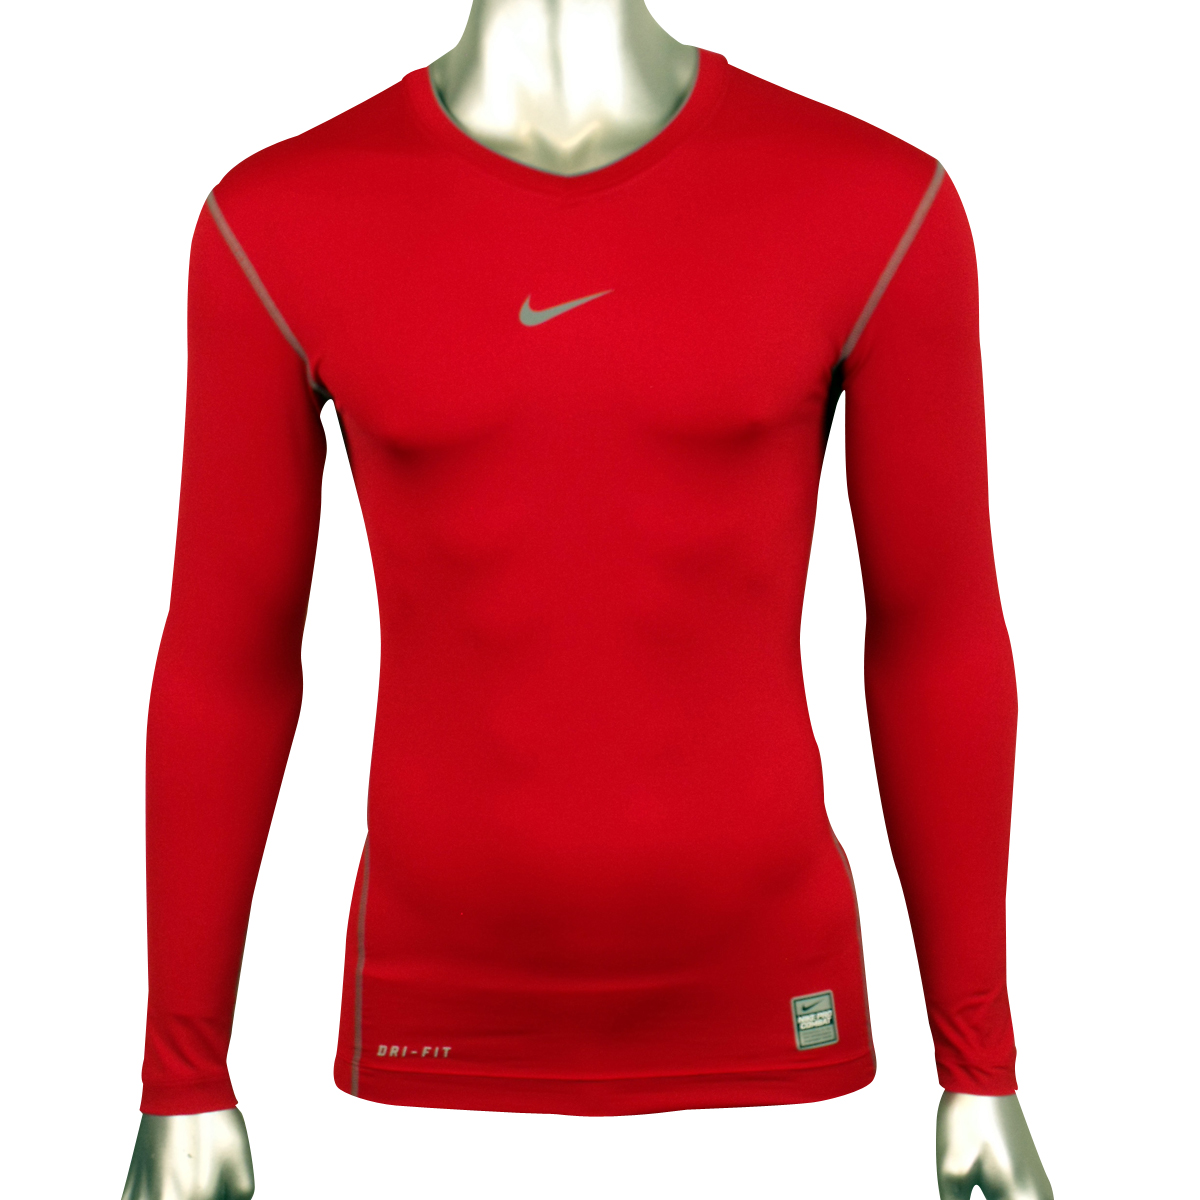 Mens-Nike-Pro-Combat-Compression-Sports-Training-Long-Sleeve-Top-Baselayer-Tee